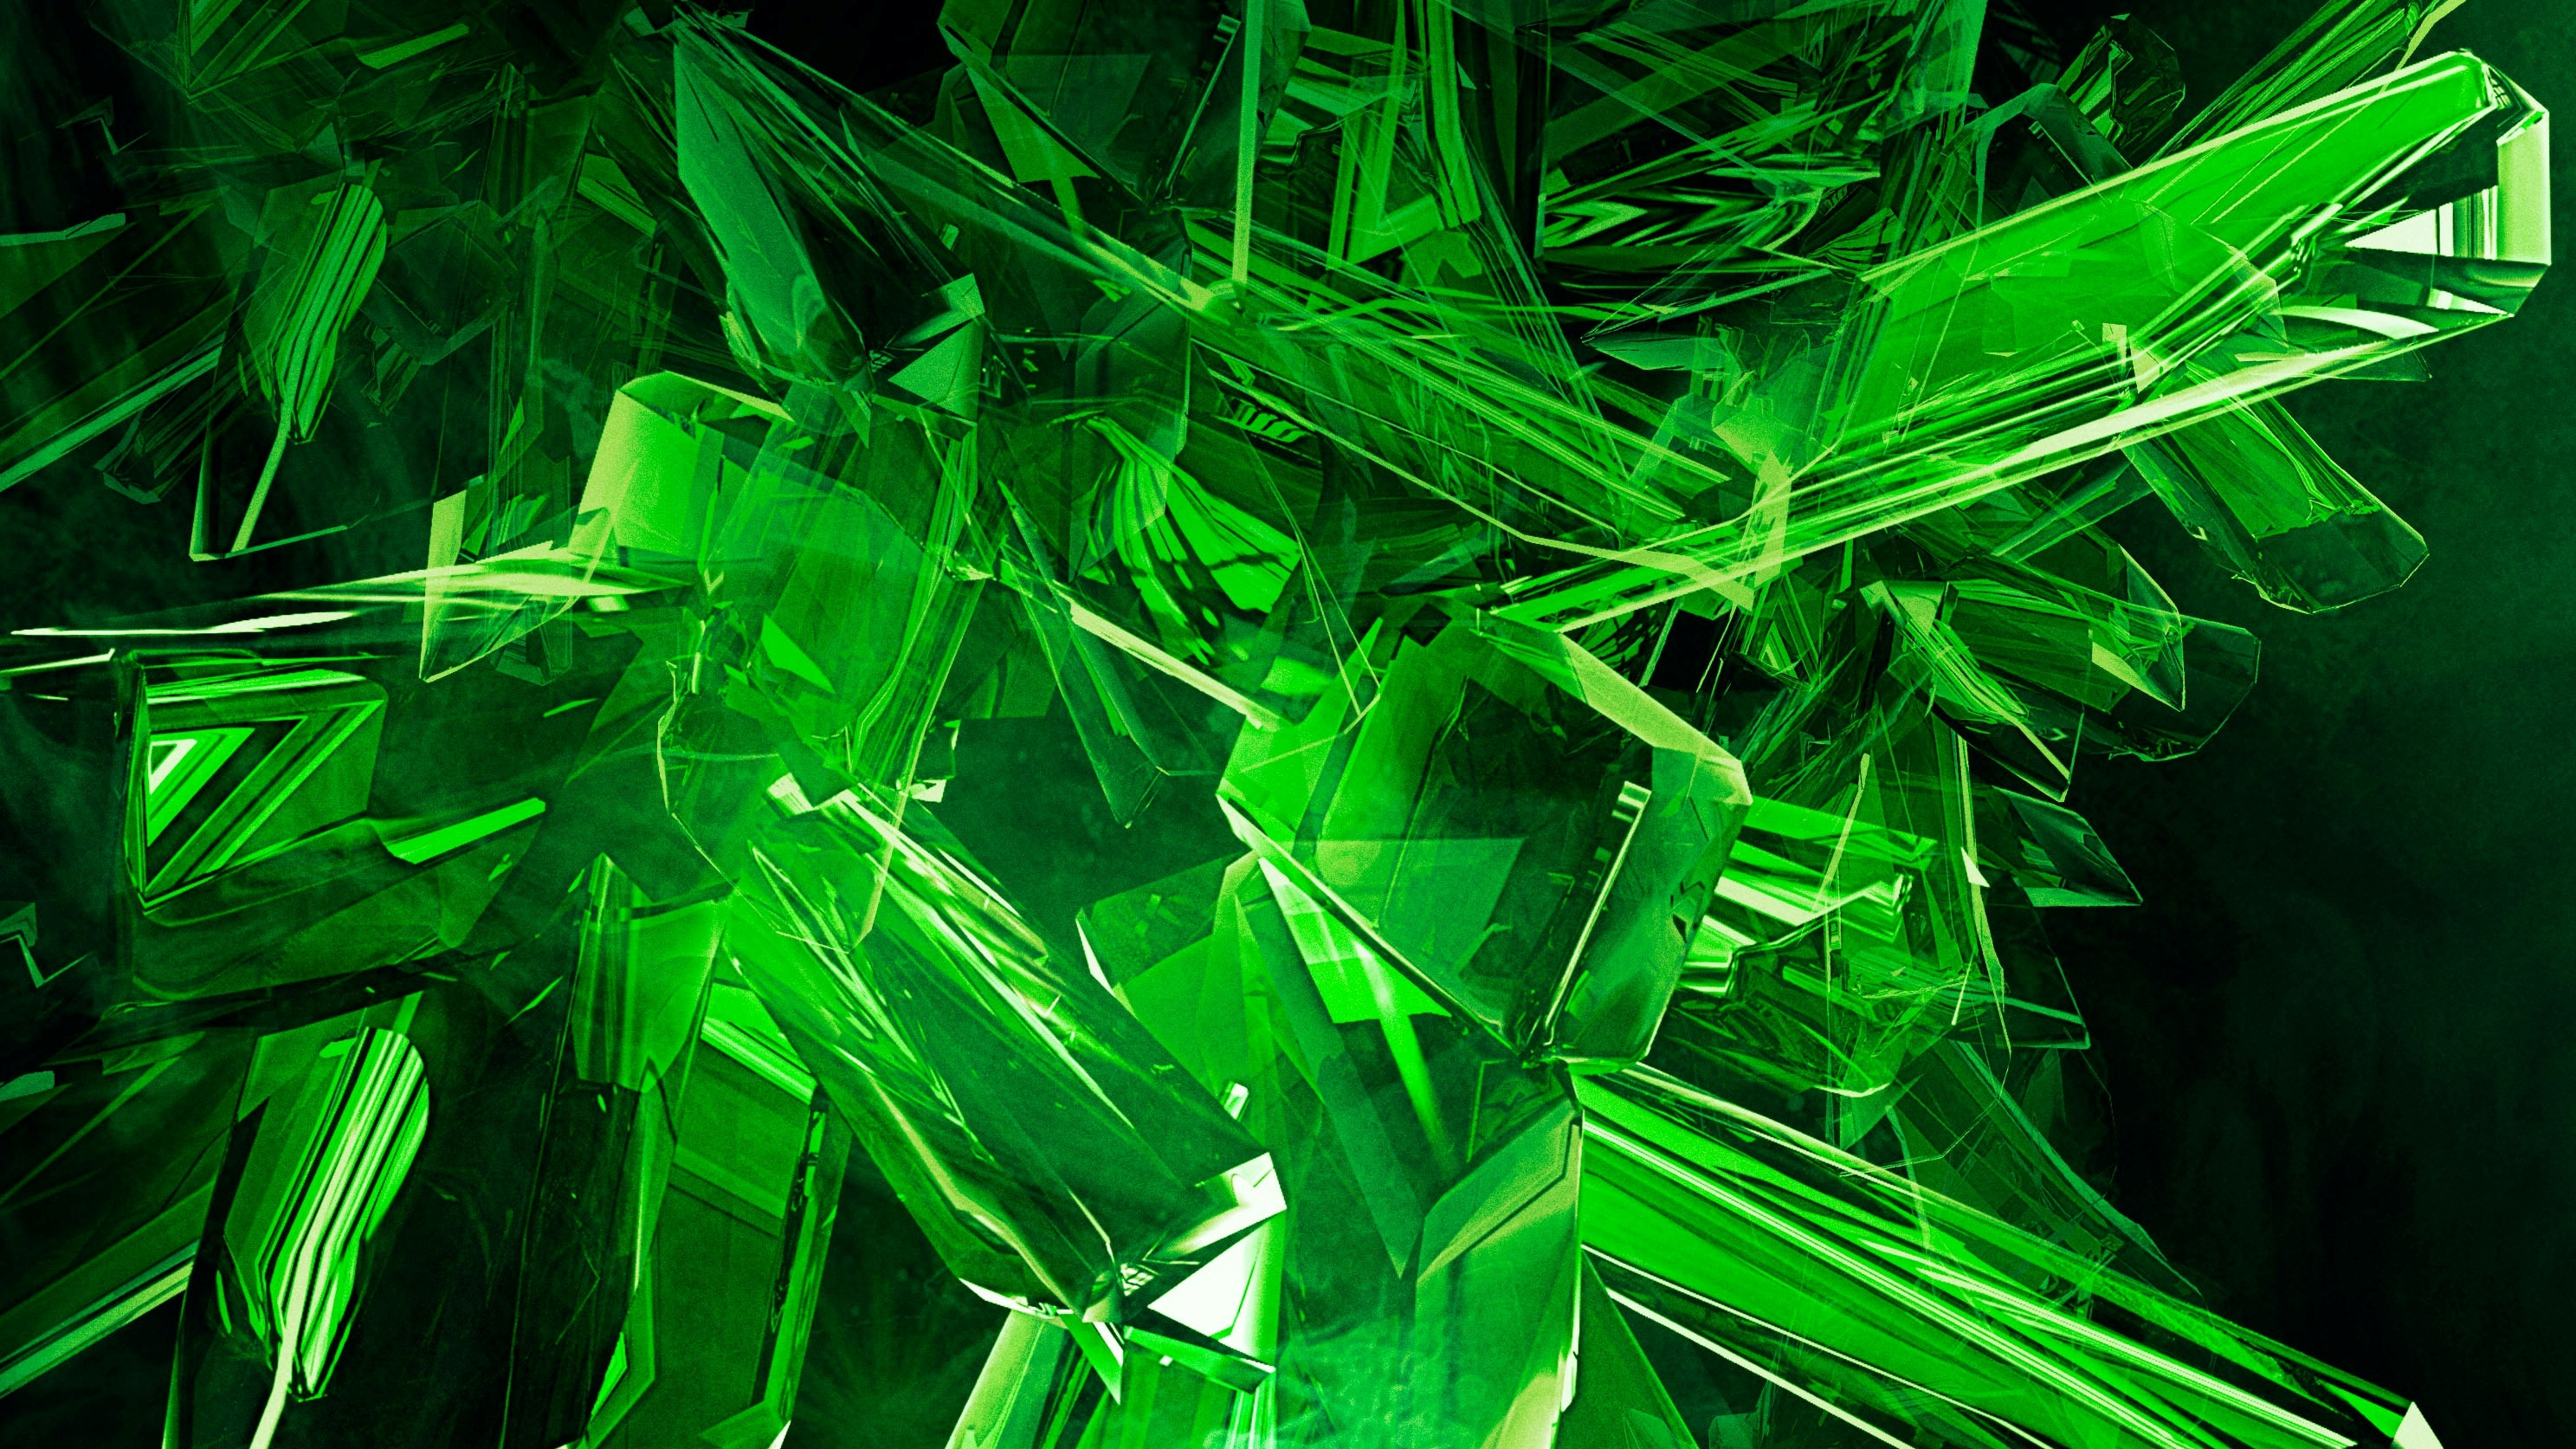 Cool wallpapers hd   Cool hd wallpapers   Image Green View Abstract 2975x1673